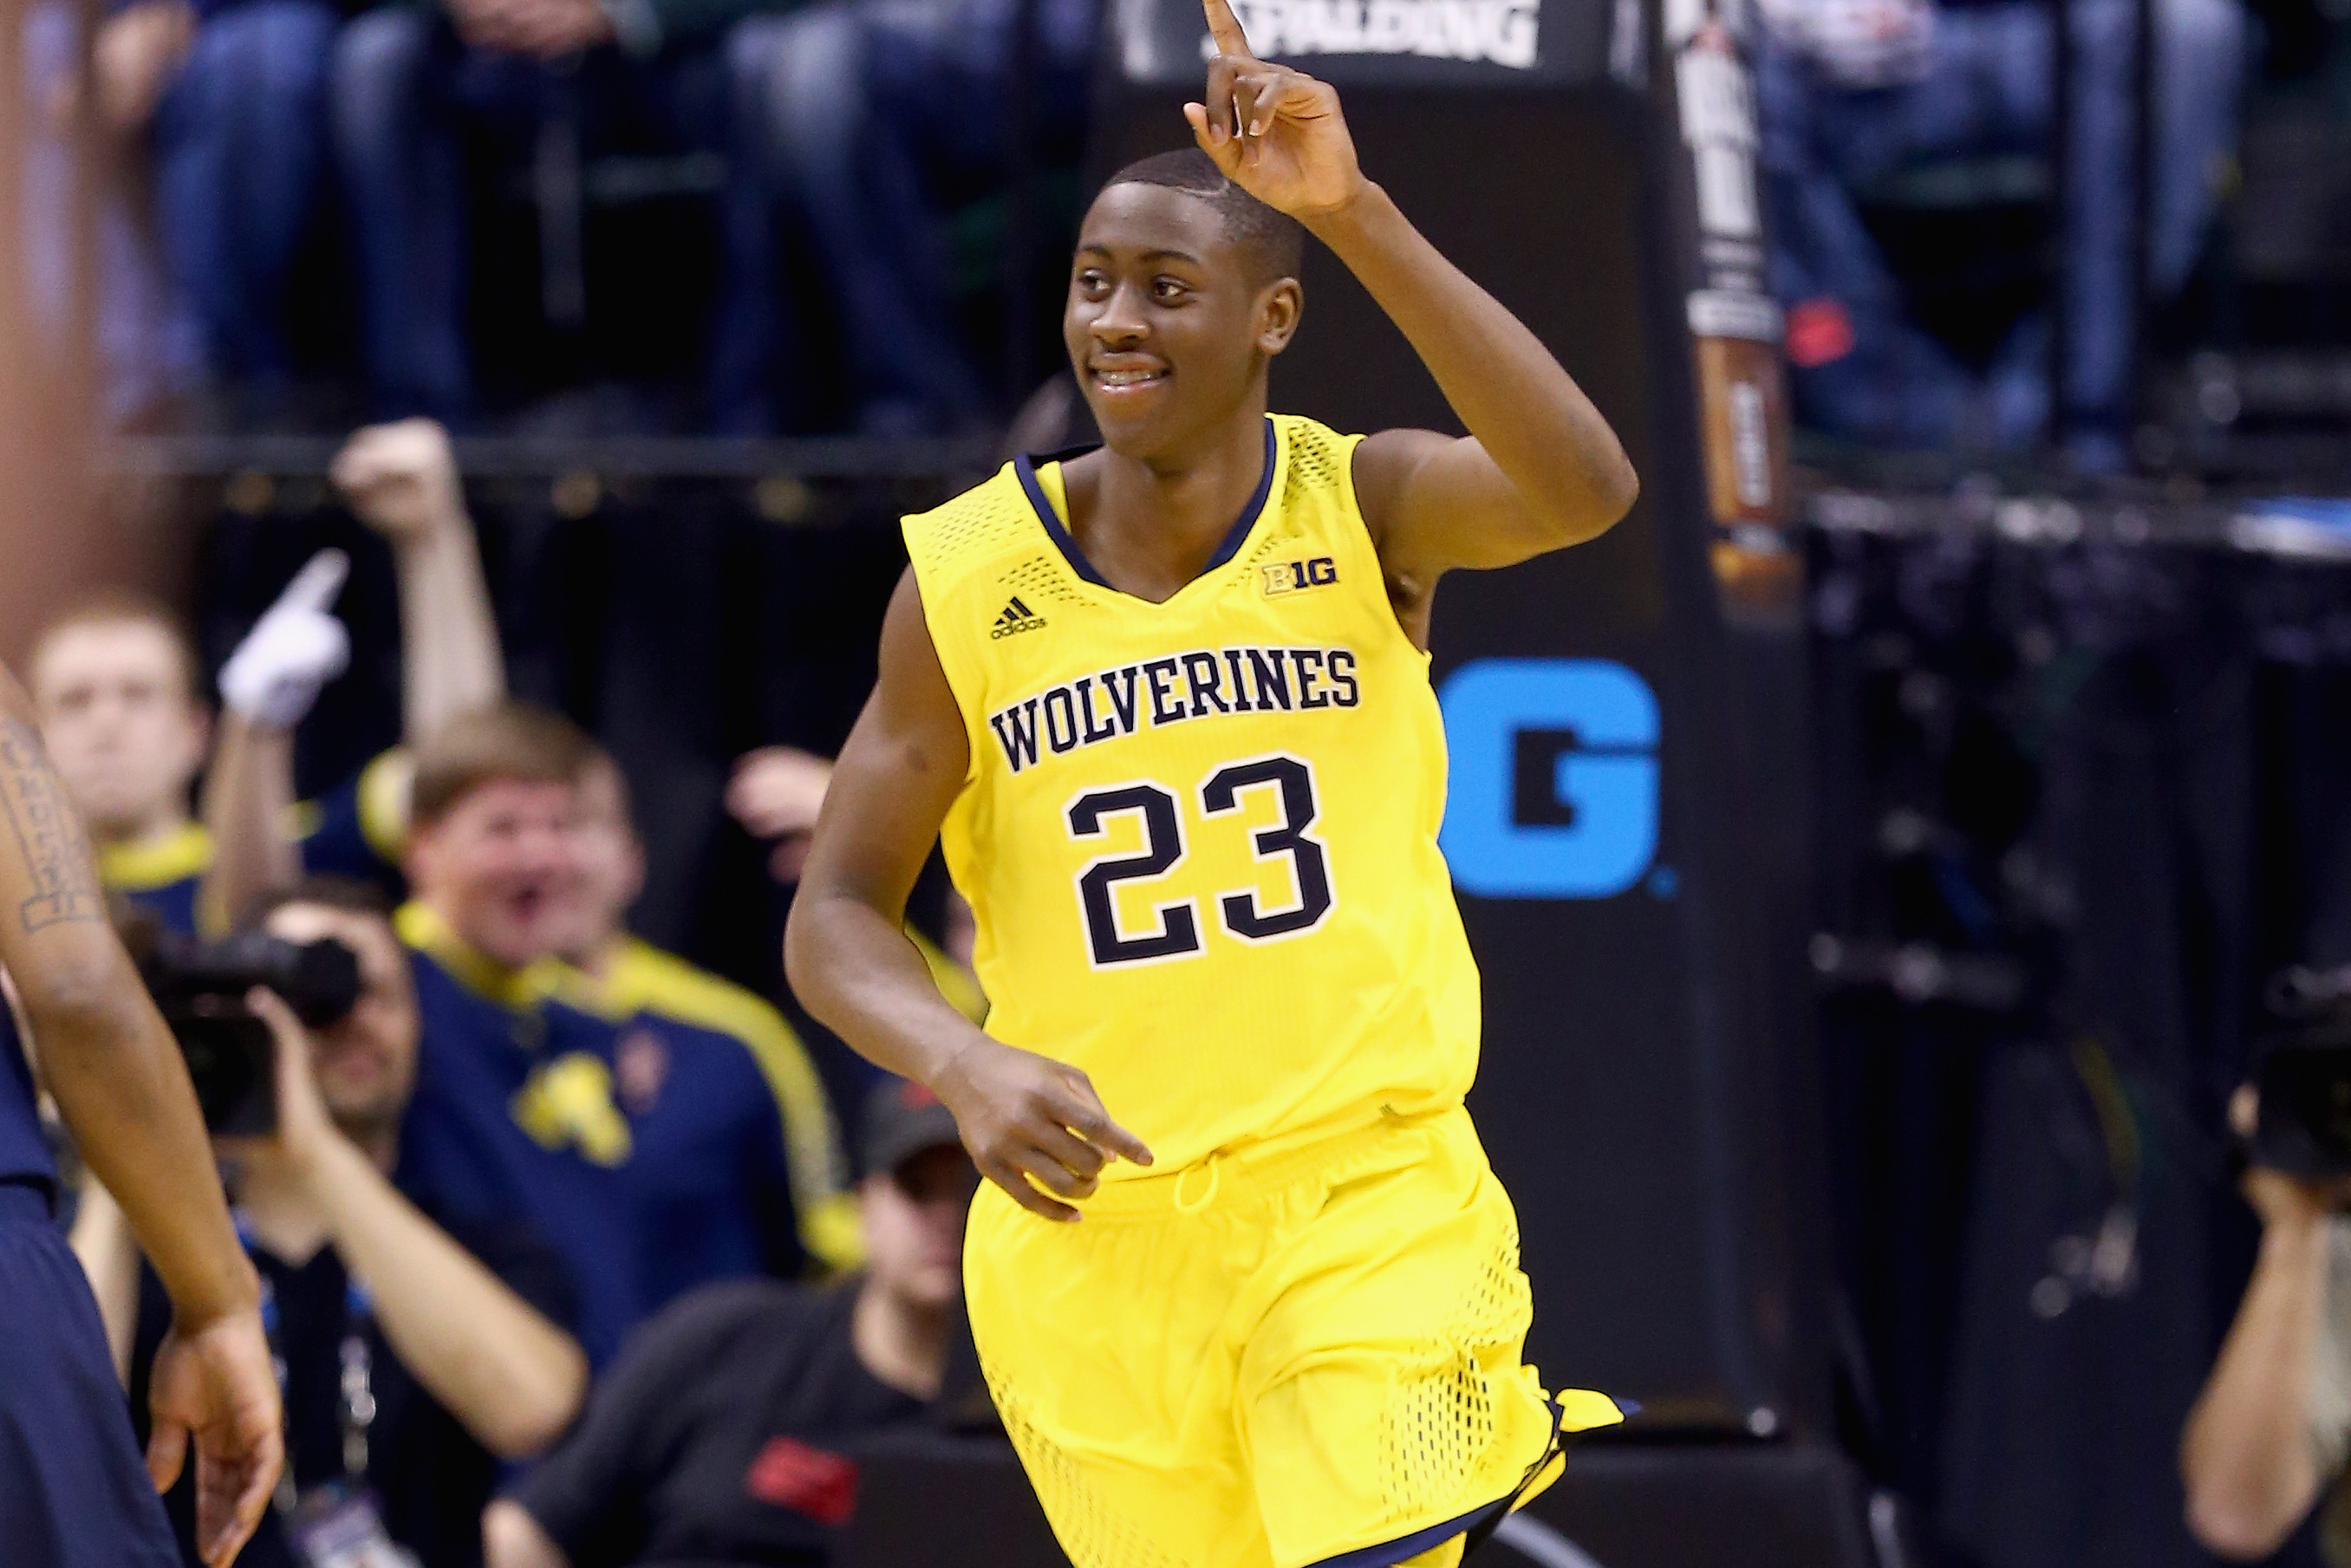 How Michigan S Caris Levert Can Emerge As A 2015 Nba Lottery Prospect Bleacher Report Latest News Videos And Highlights